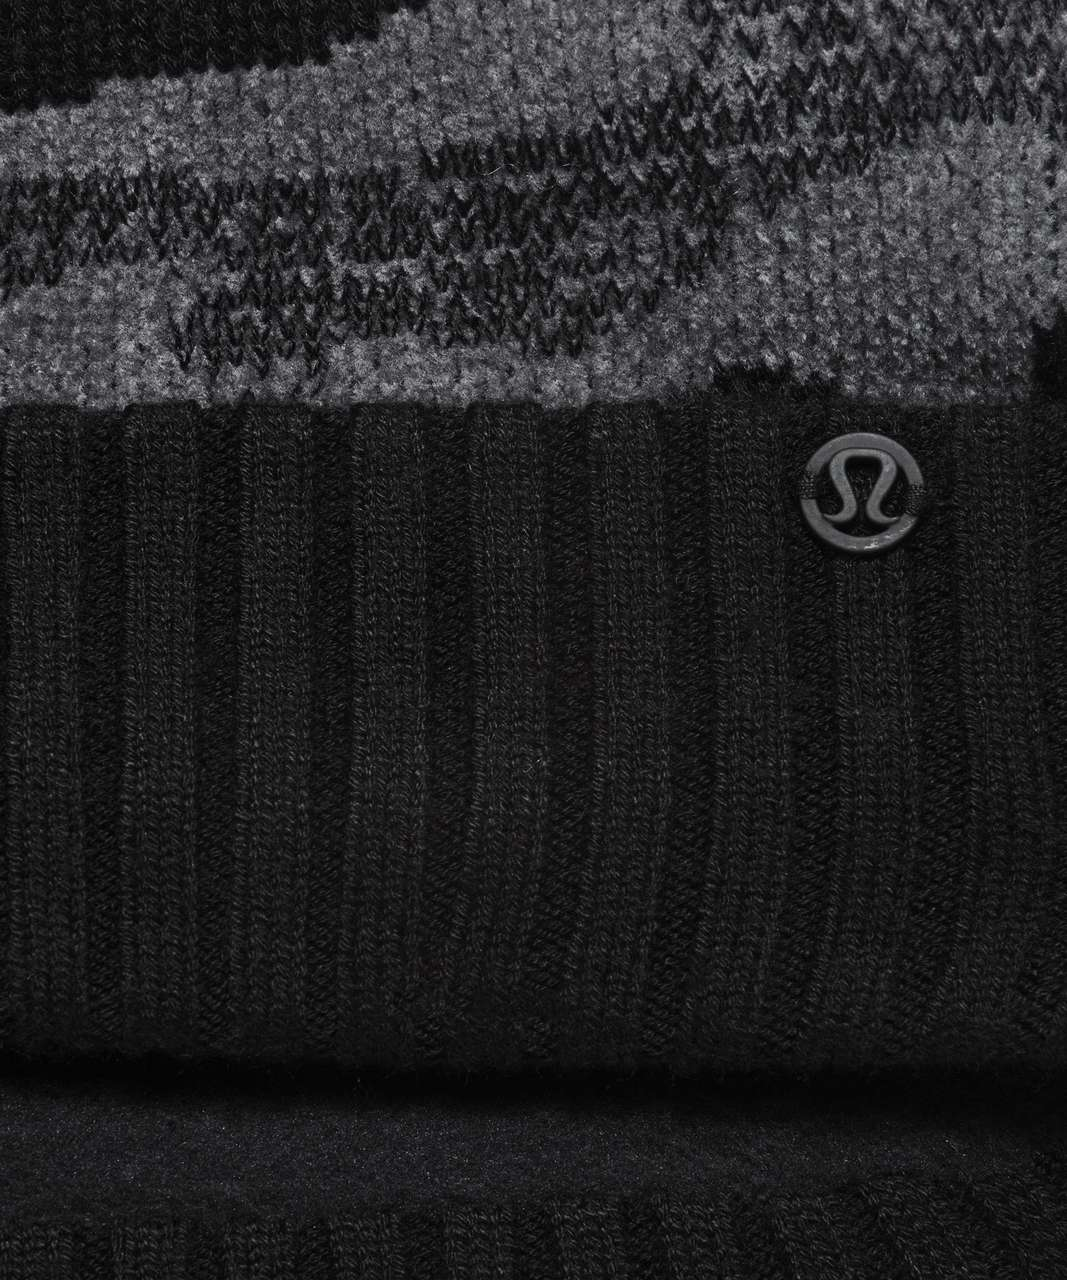 Lululemon Room for Warmth Beanie - Black / Asphalt Grey